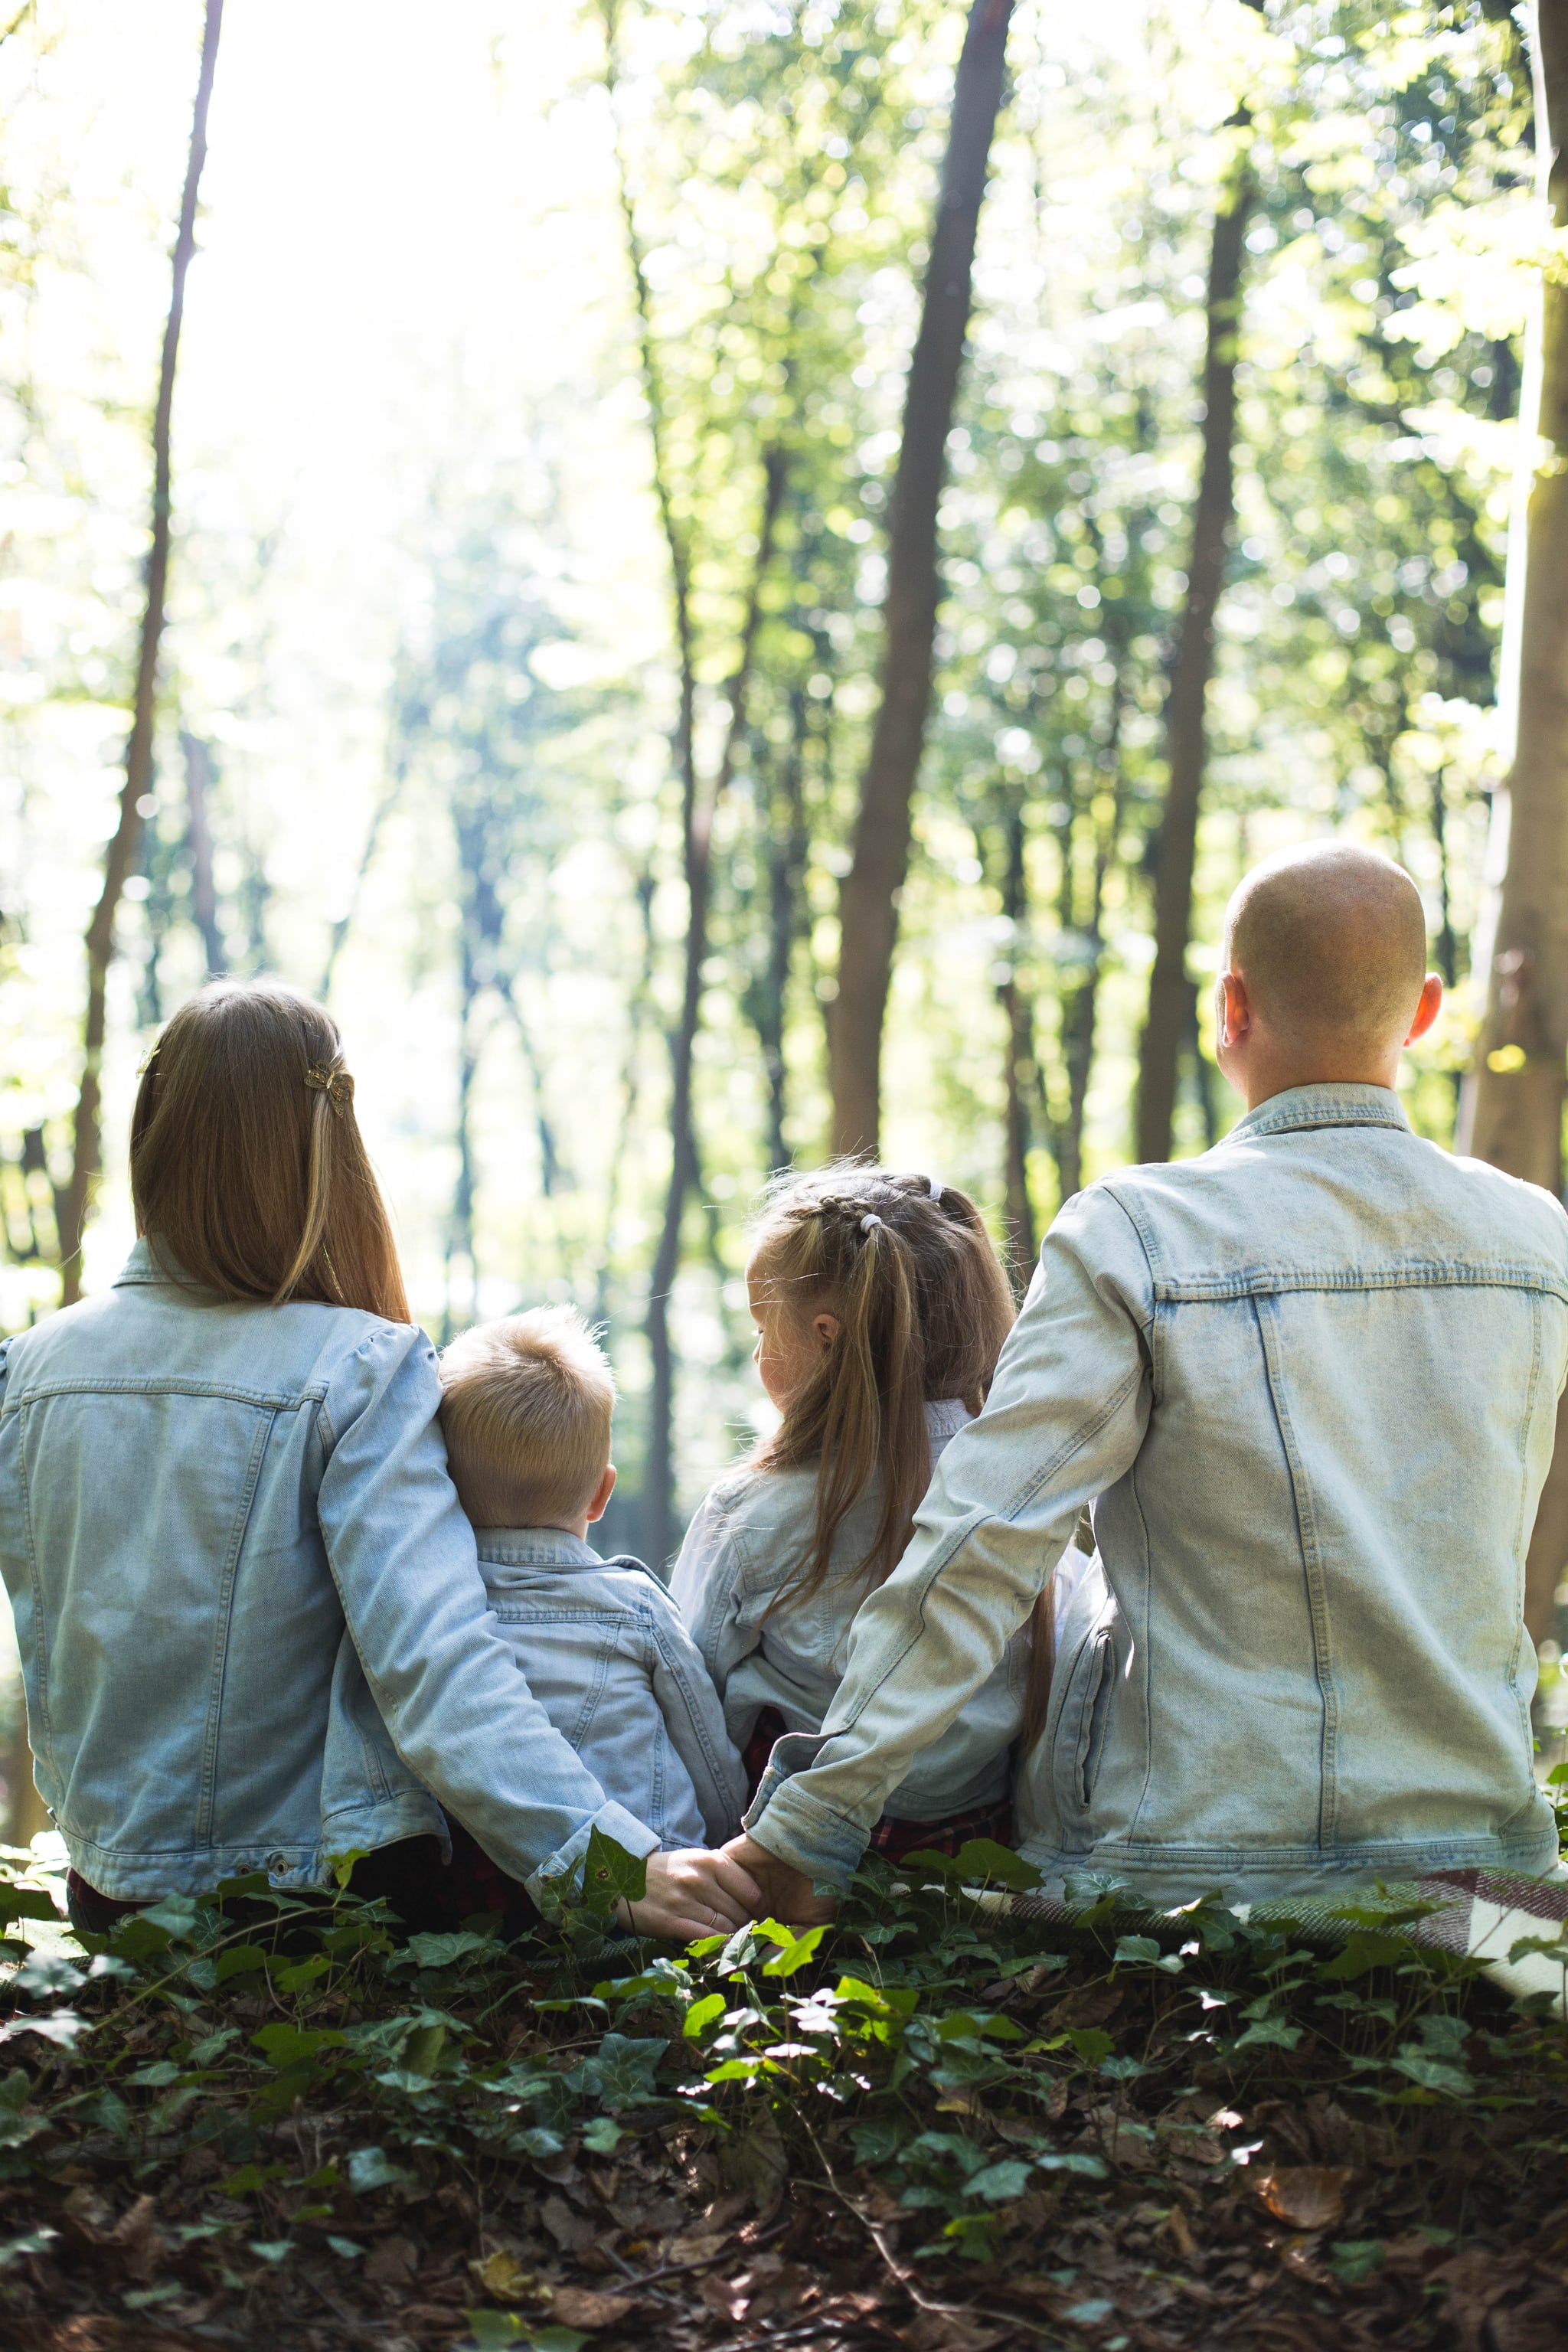 Should You Tell Your Kids You're in Marriage Counseling? A Licensed Psychologist Weighs In